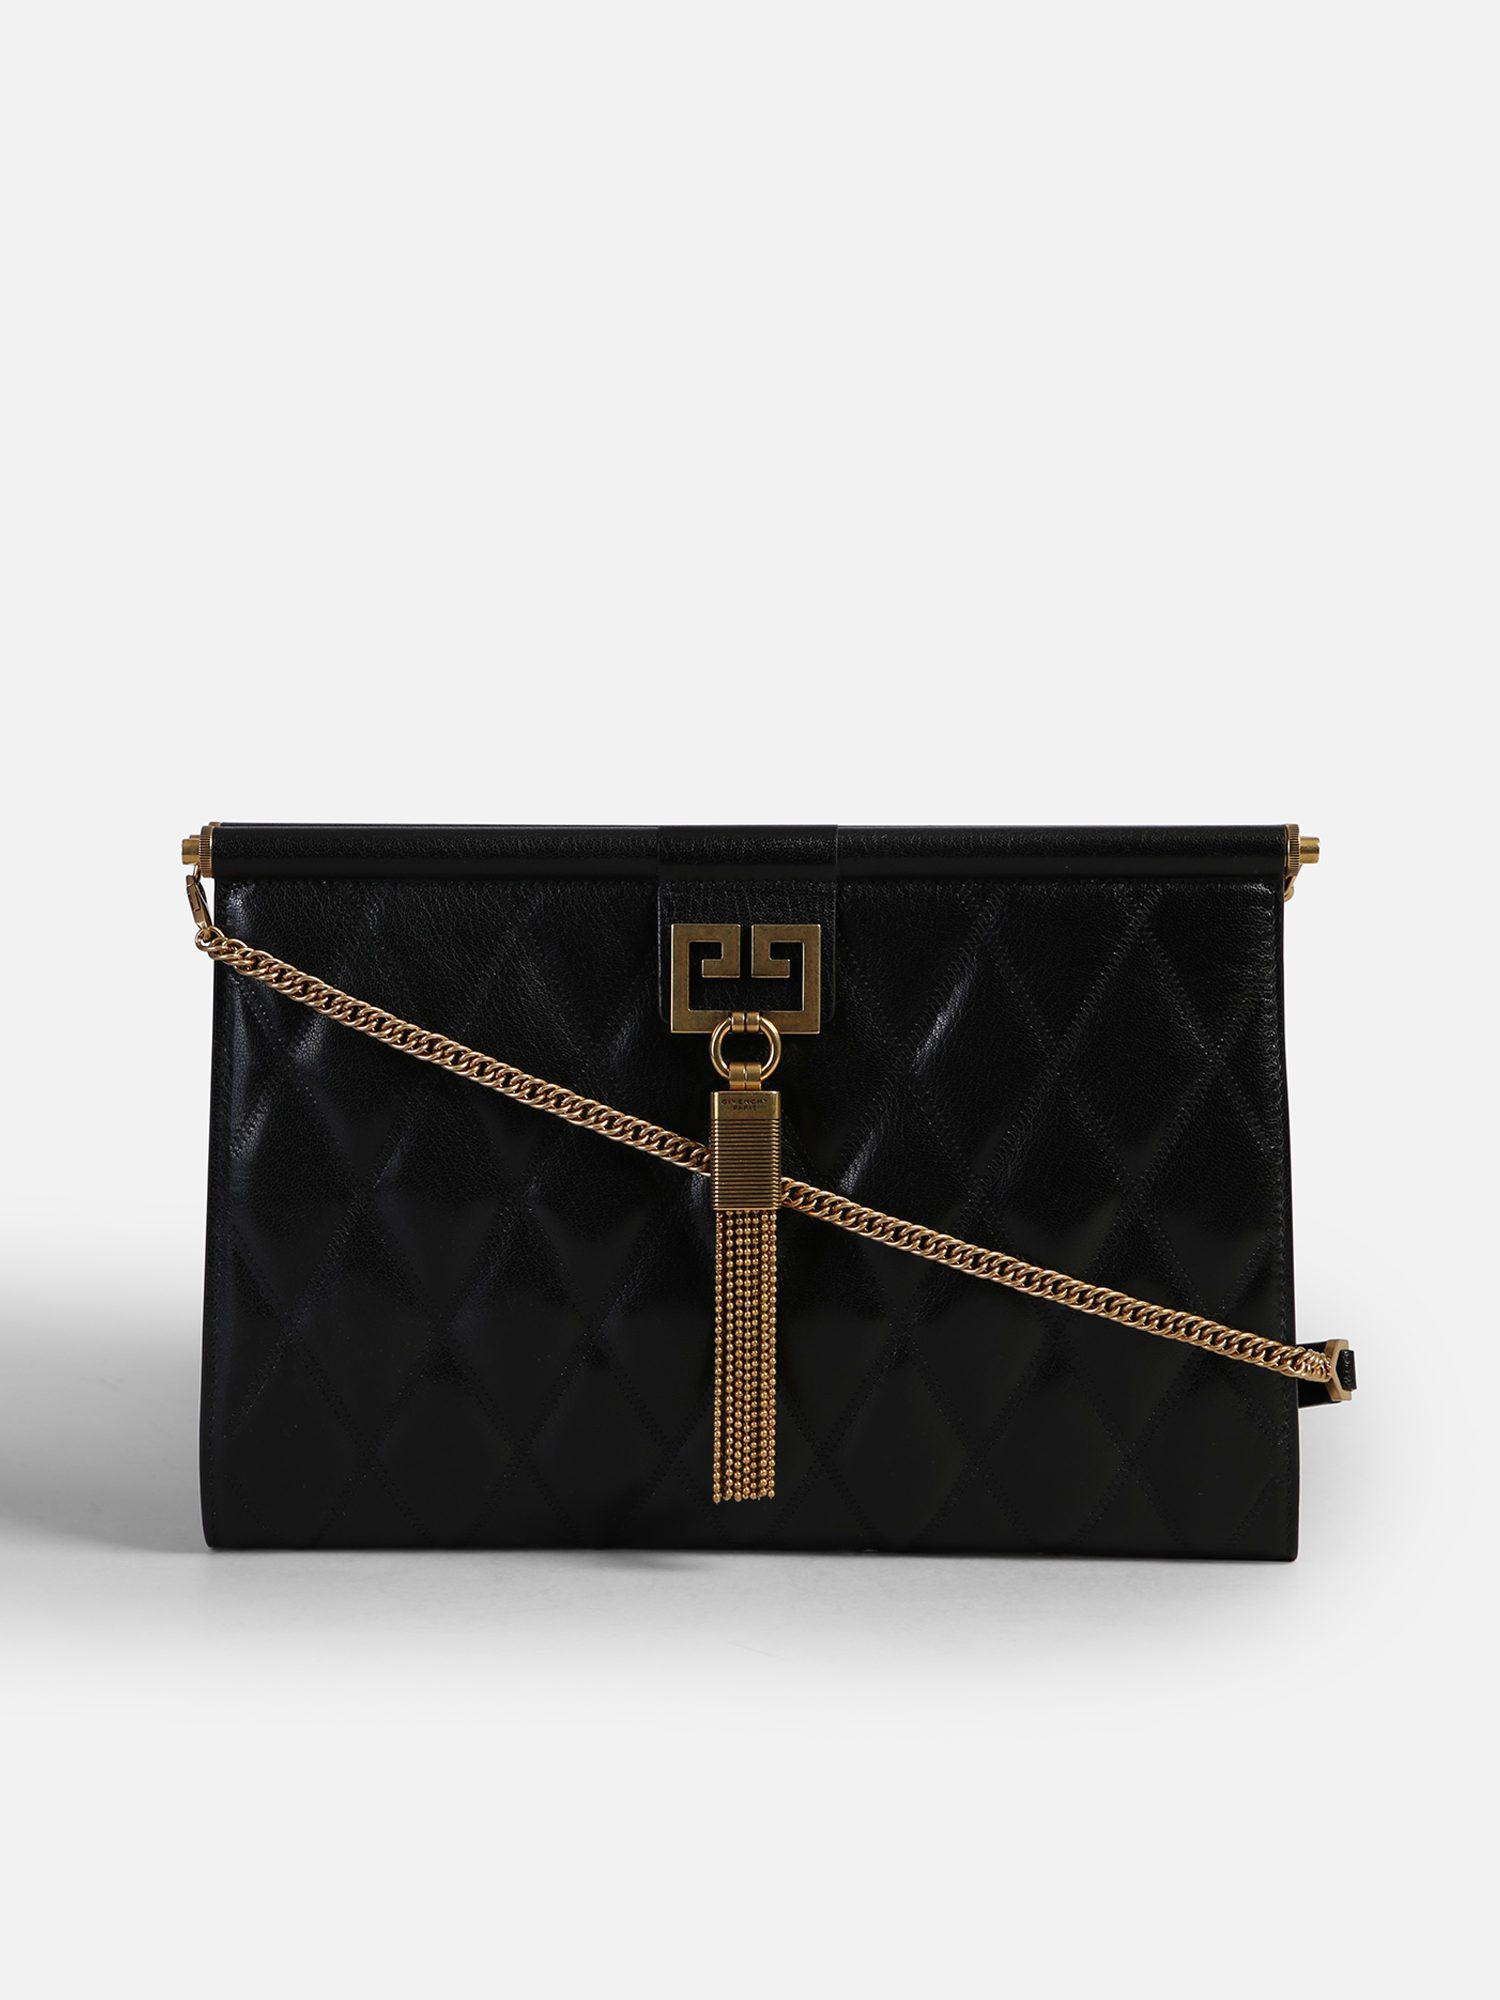 Lyst - Givenchy Medium Gem Quilted Leather Bag in Black 39fc4a99c7